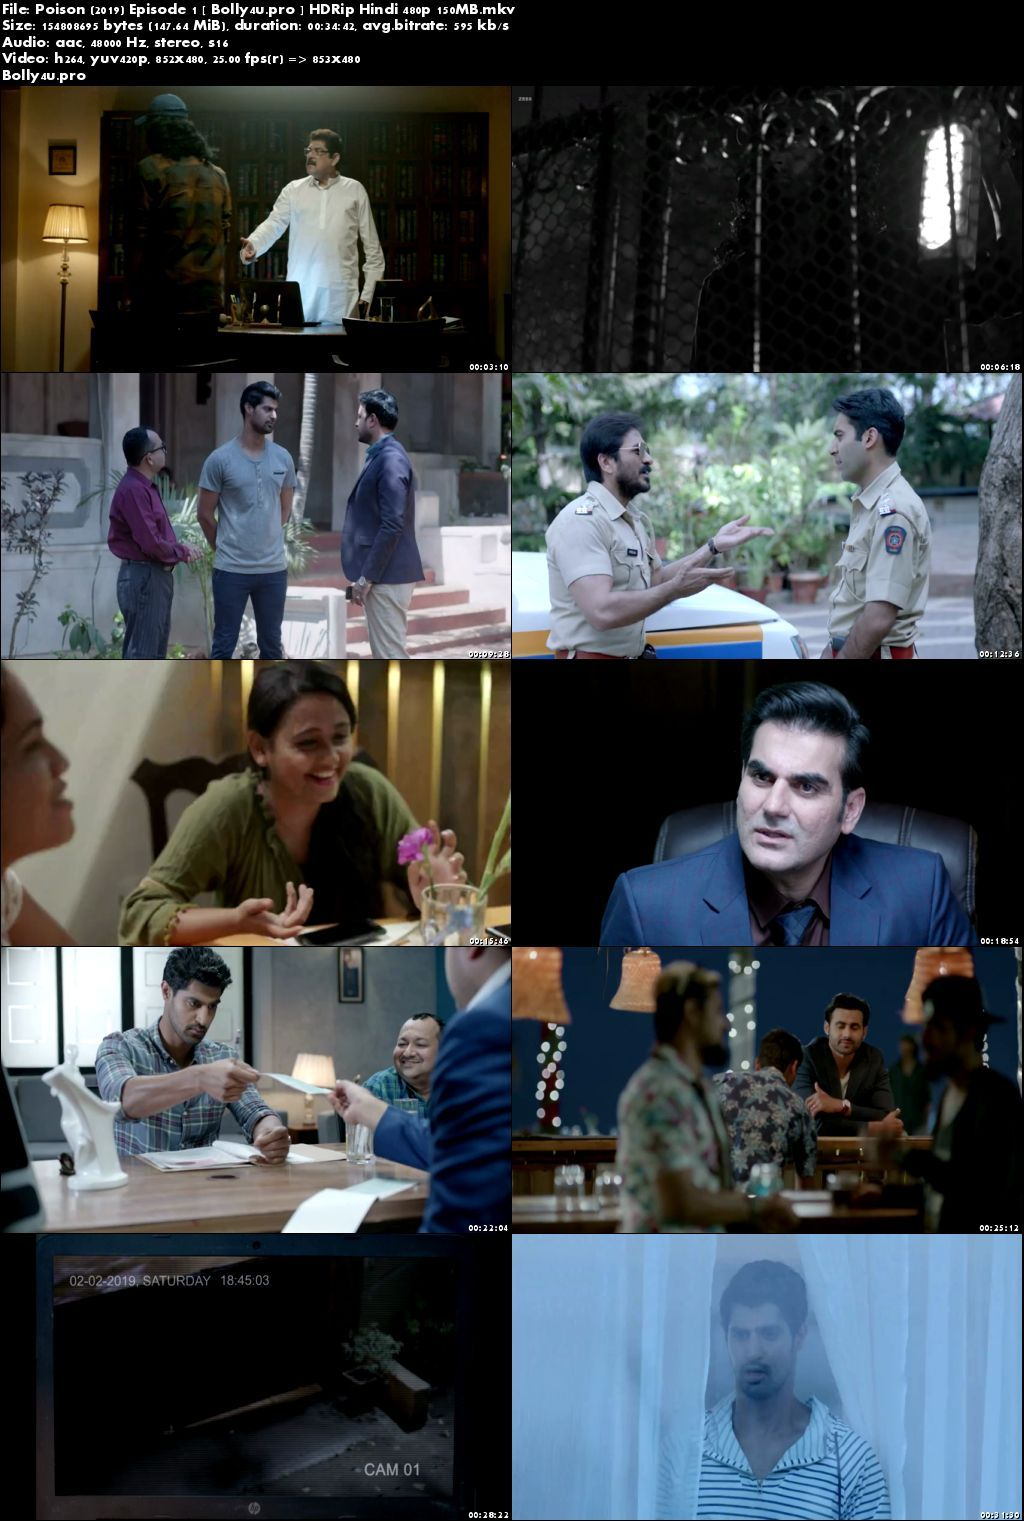 Poison 2019 hdrip 900mb hindi complete s01 download 480p